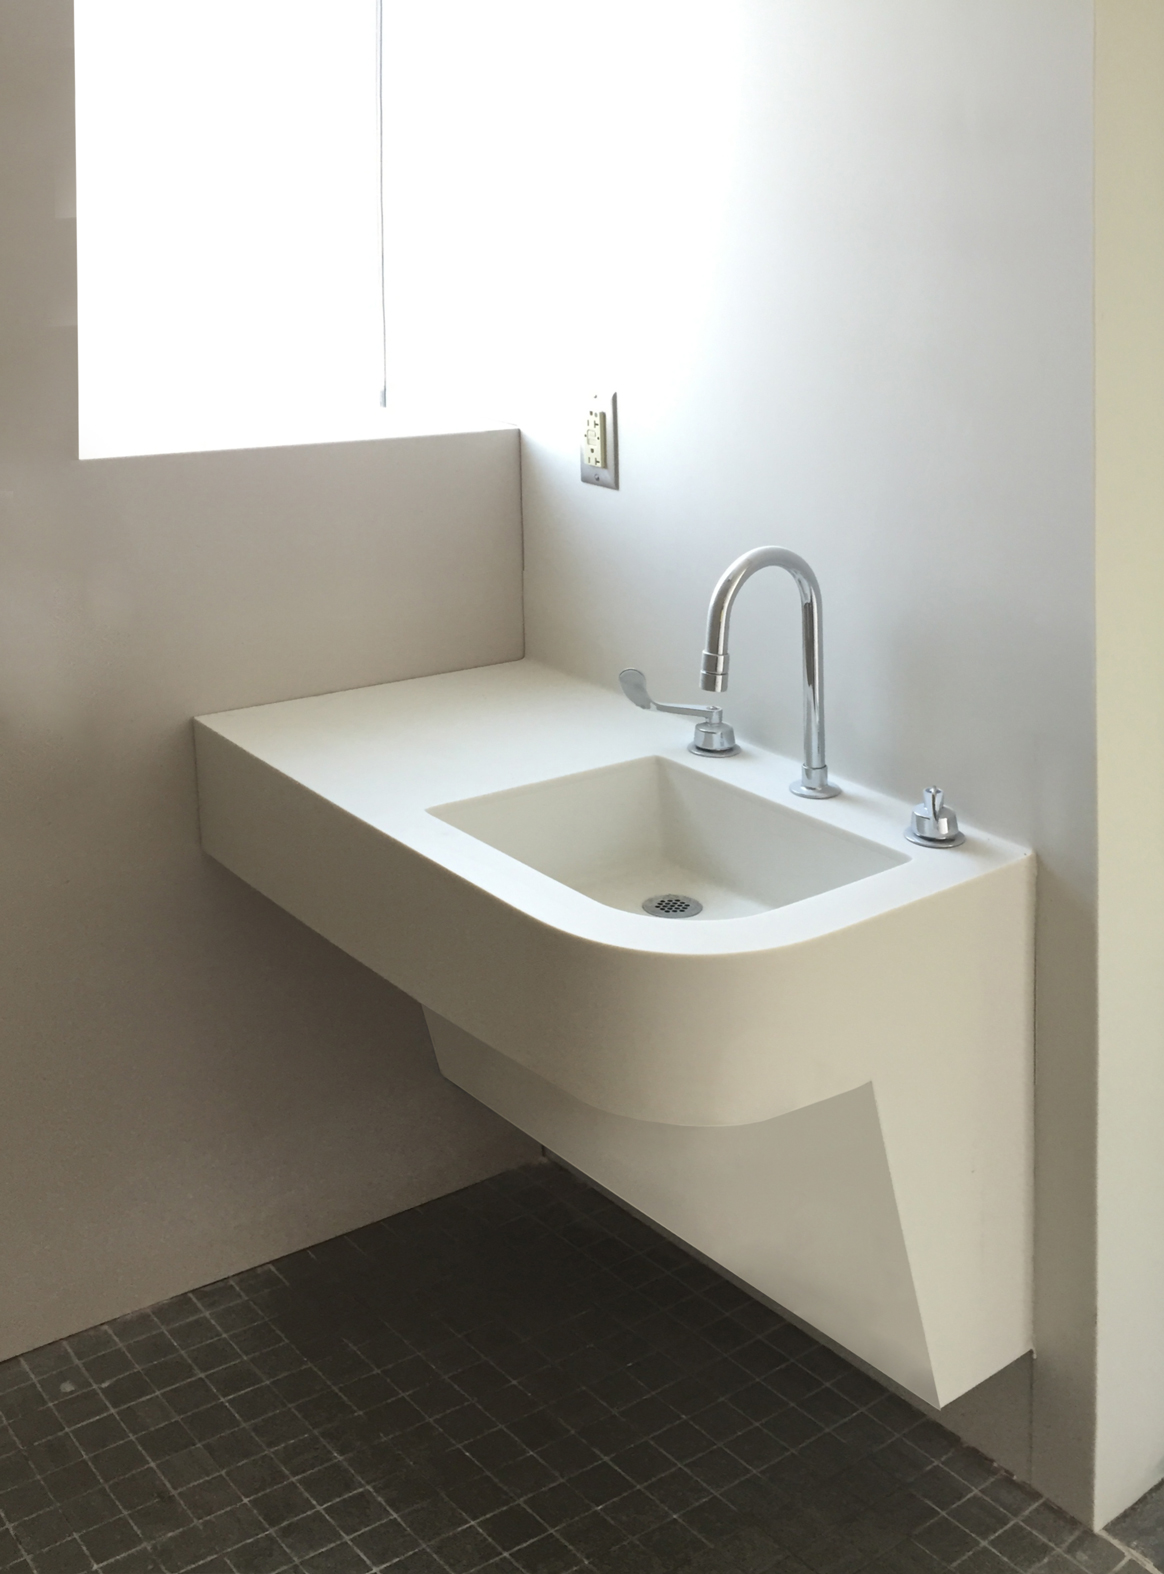 Futrus 174 Solutions With Corian 174 Design Sink Modules